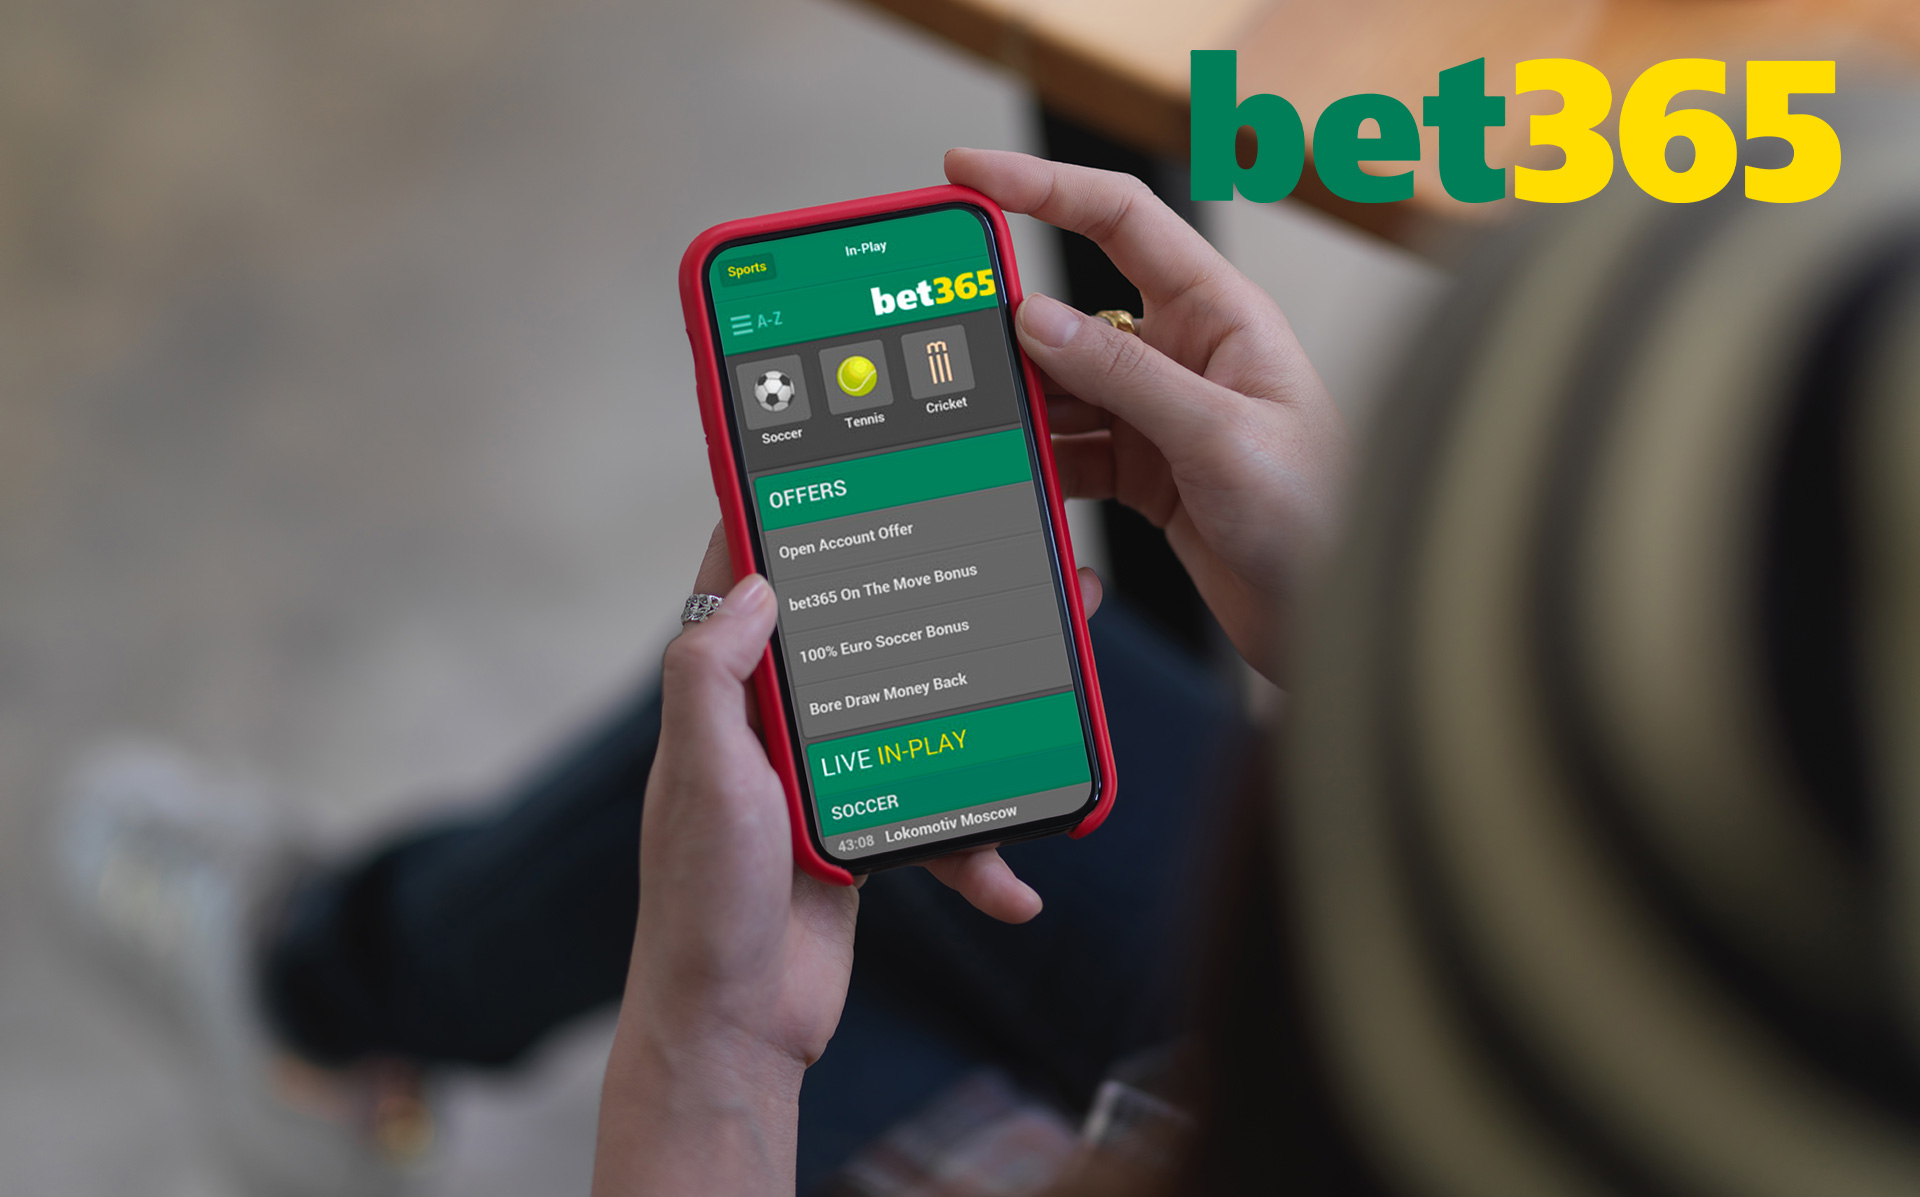 Bet365 app gives a great opportunity to watch IPL streams and bet live.